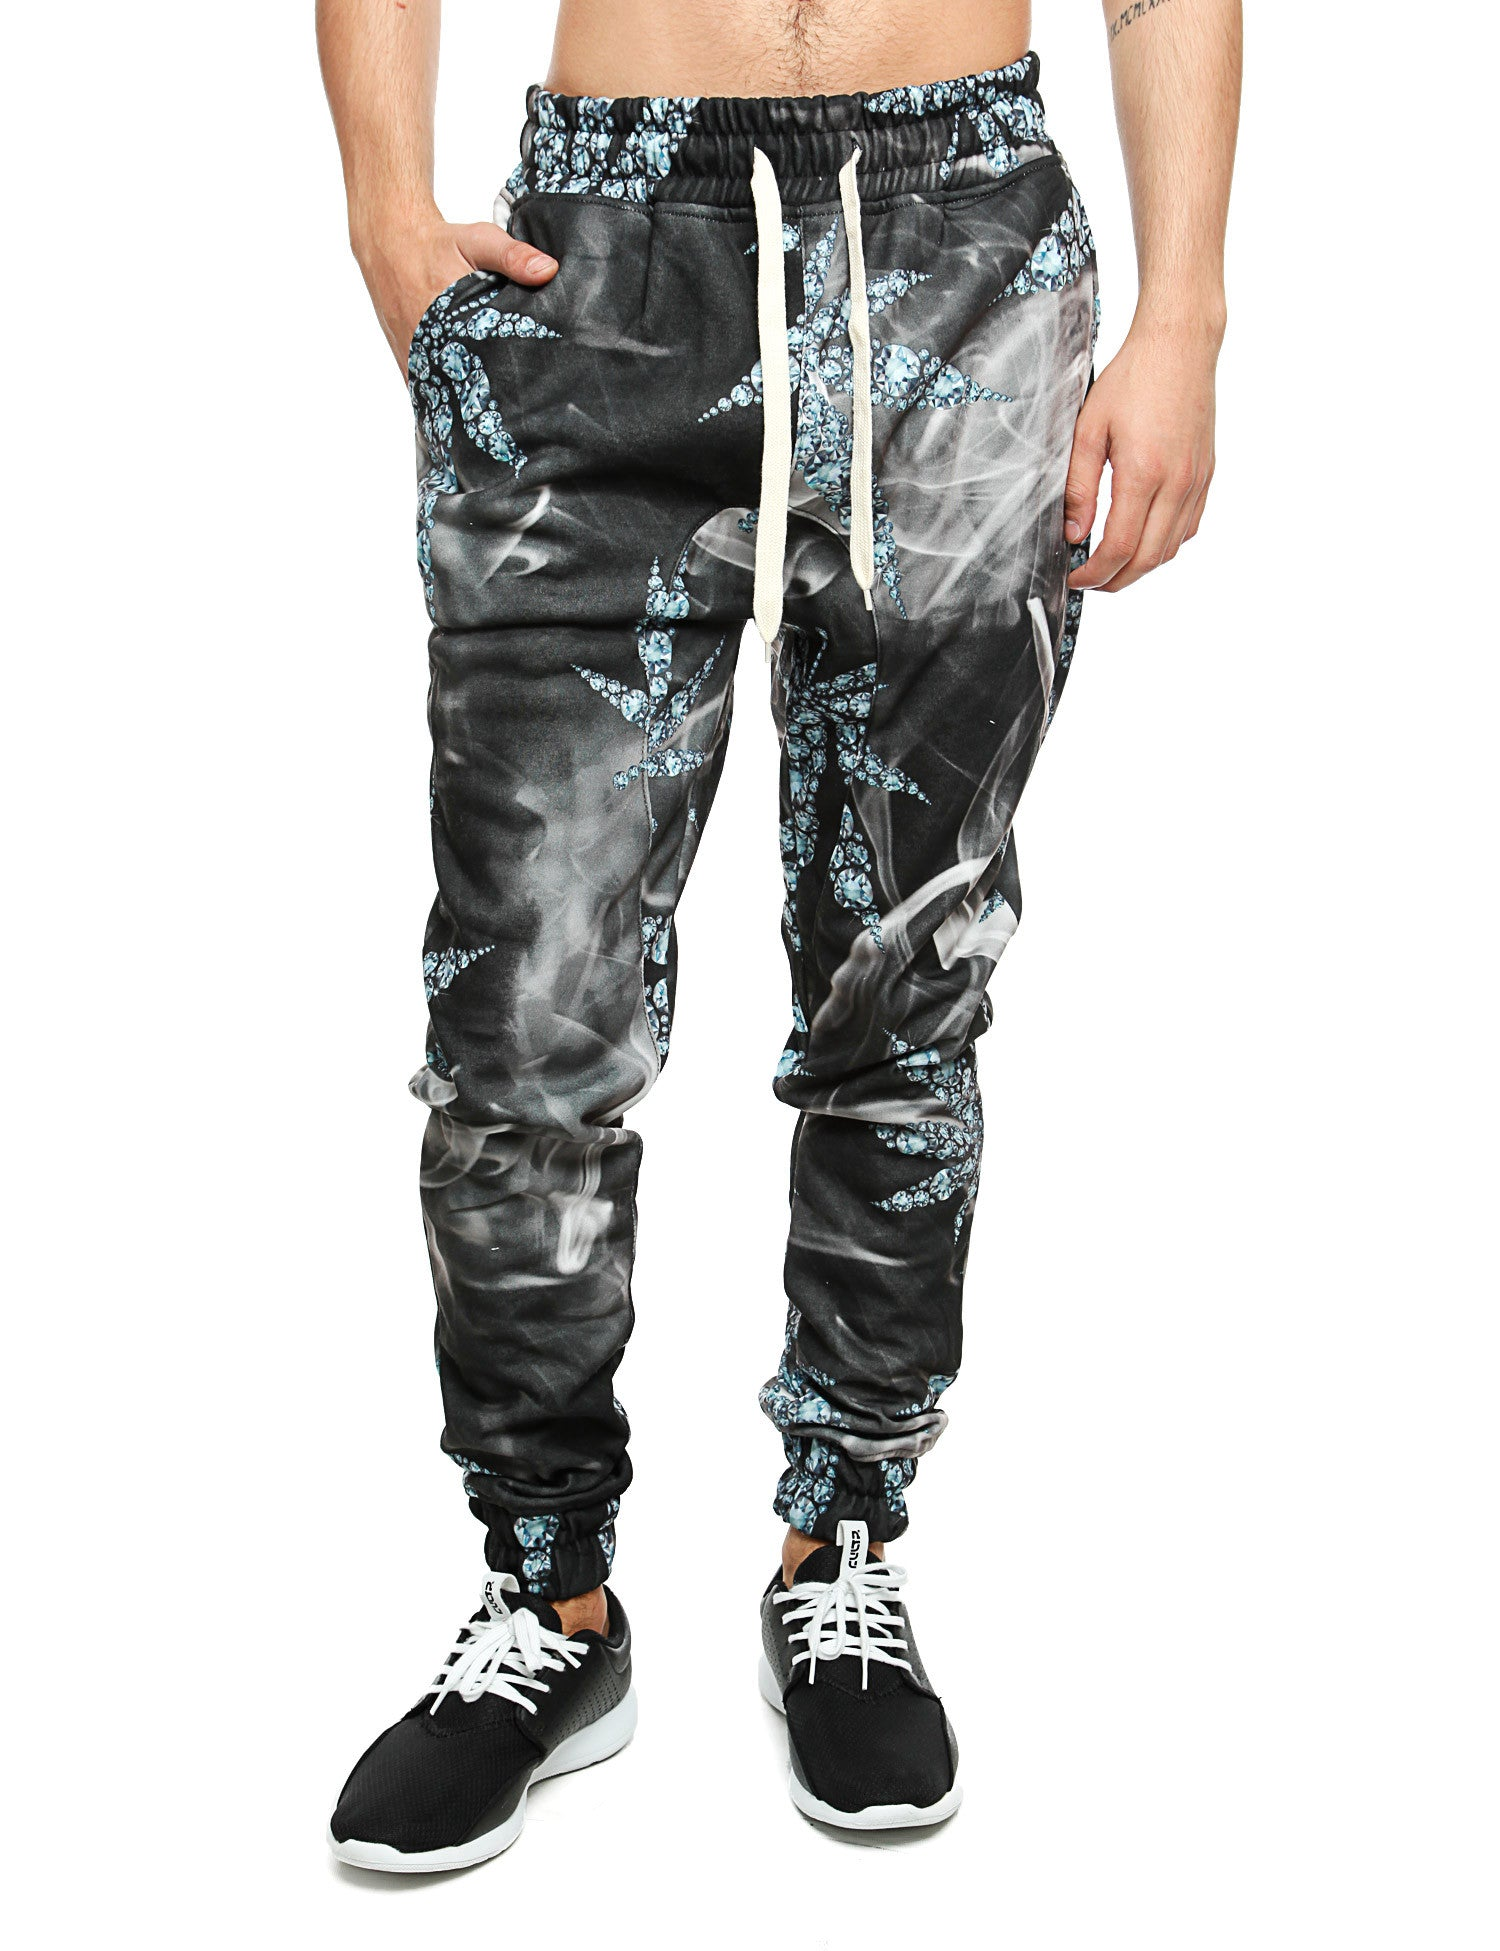 Imperious ?Diamond Leaf? Sweatpant FP522  Black